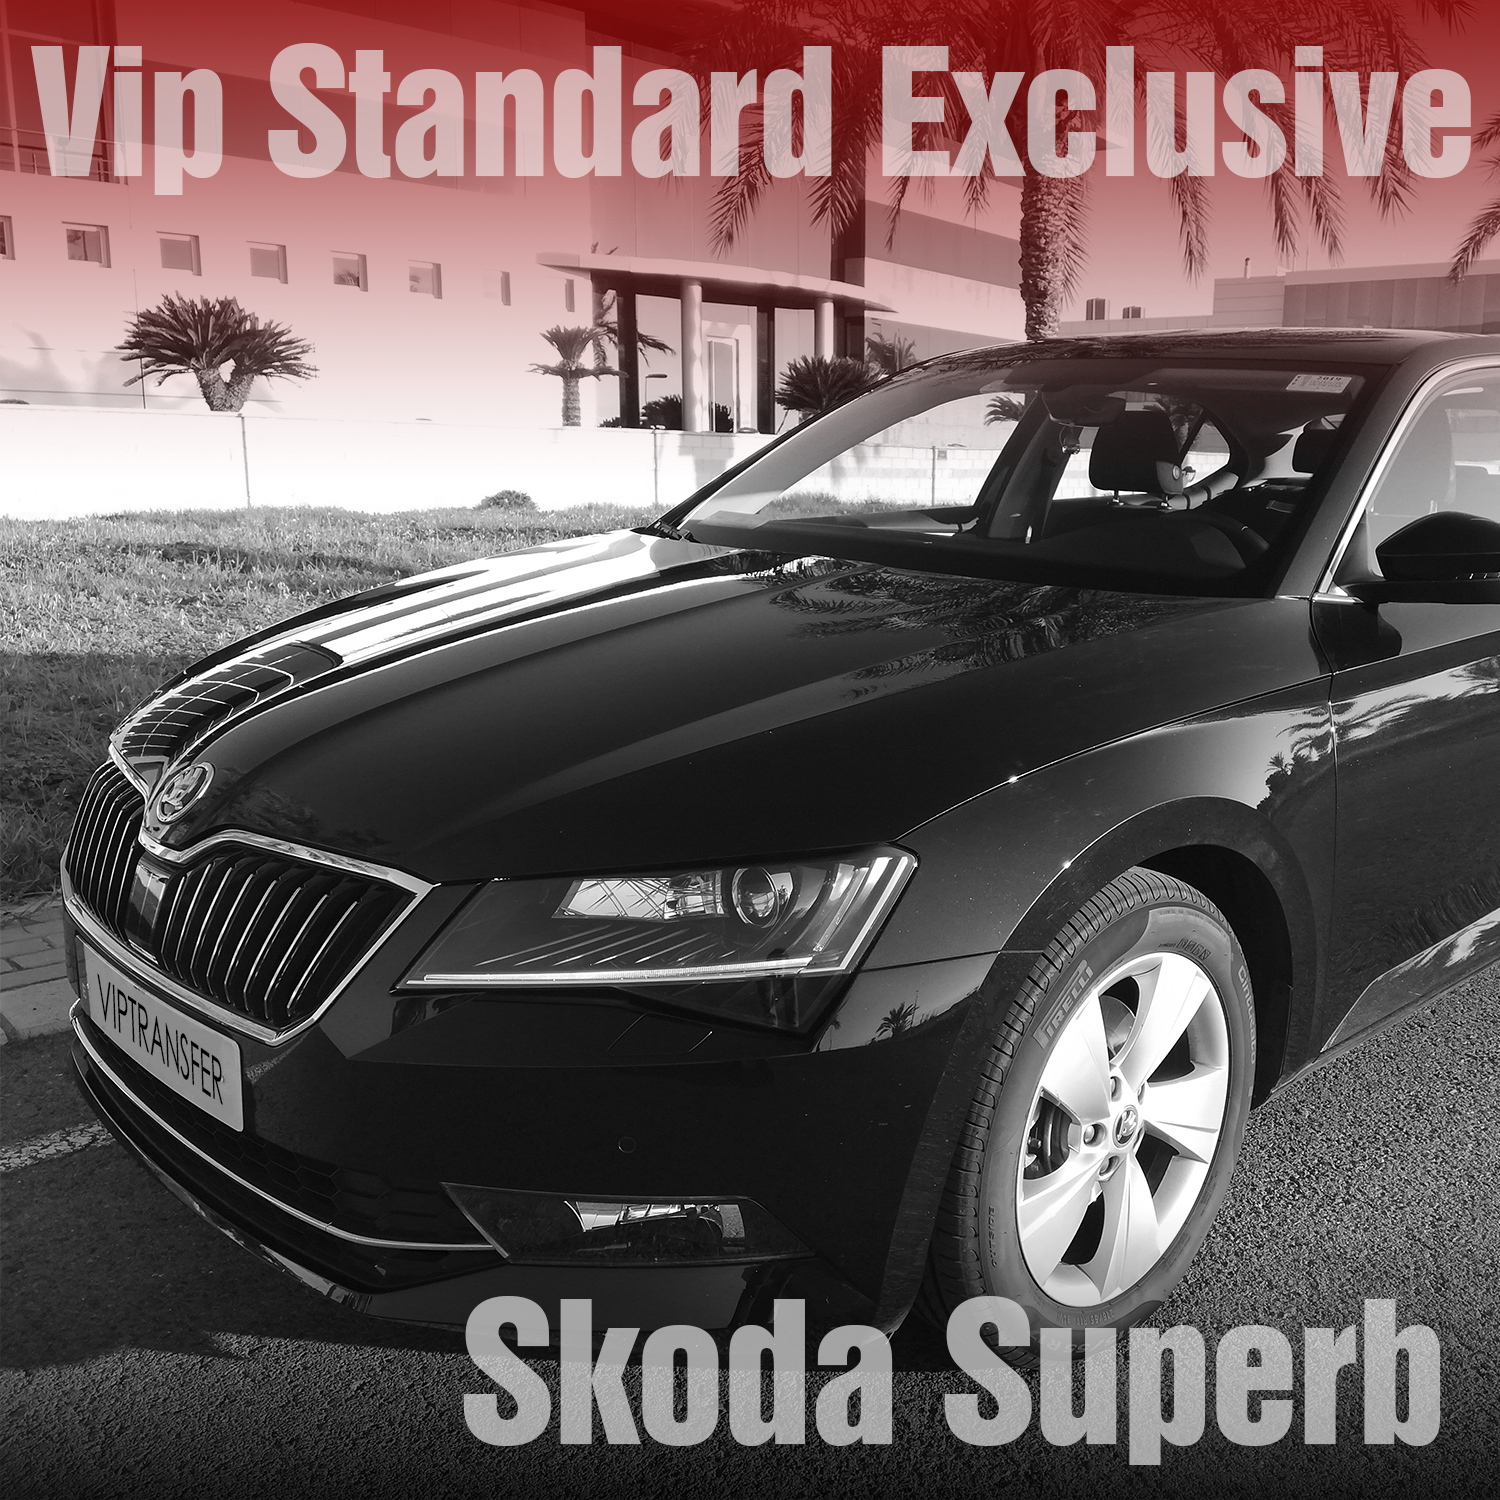 Skoda Superb Exclusive